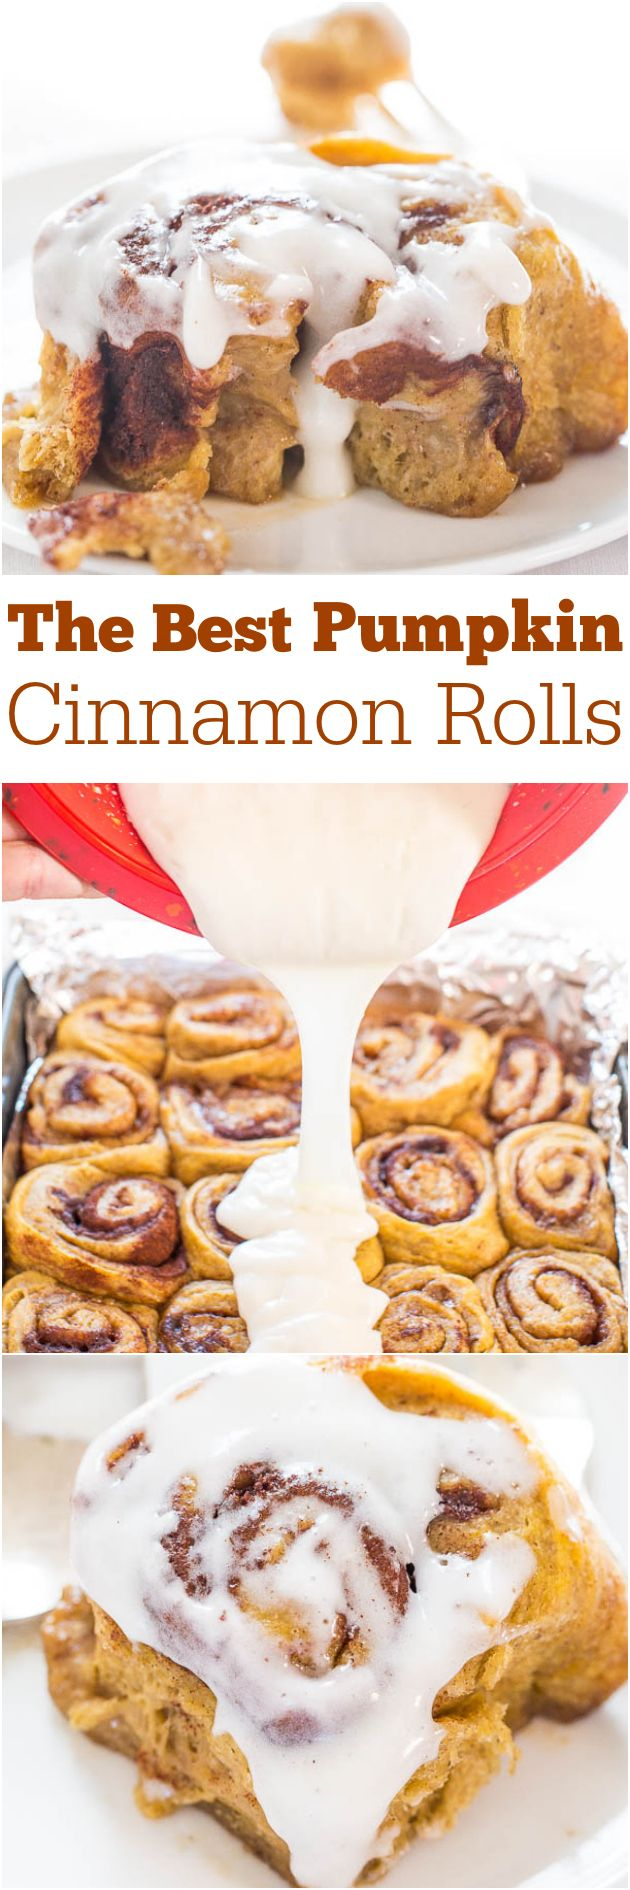 The Best Pumpkin #Cinnamon Rolls Ever. Super soft, fluffy, and topped with a cream cheese glaze!  http://www.zhounutrition.com/